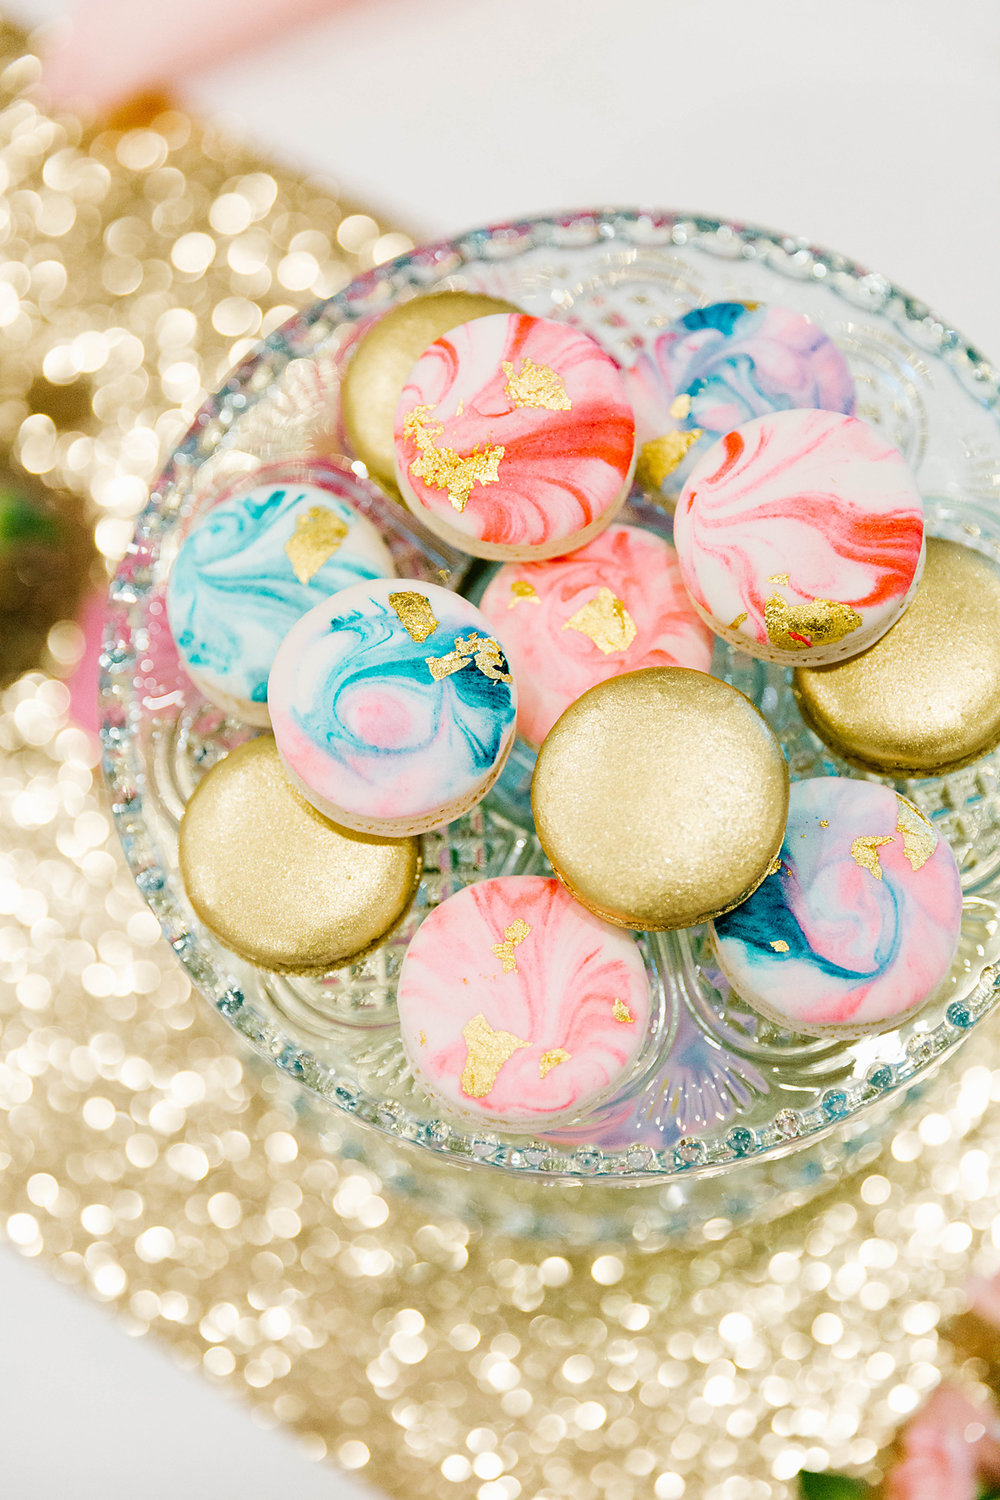 Macarons by Macarons by Monika. Photography by Poppy & Sage Photography.